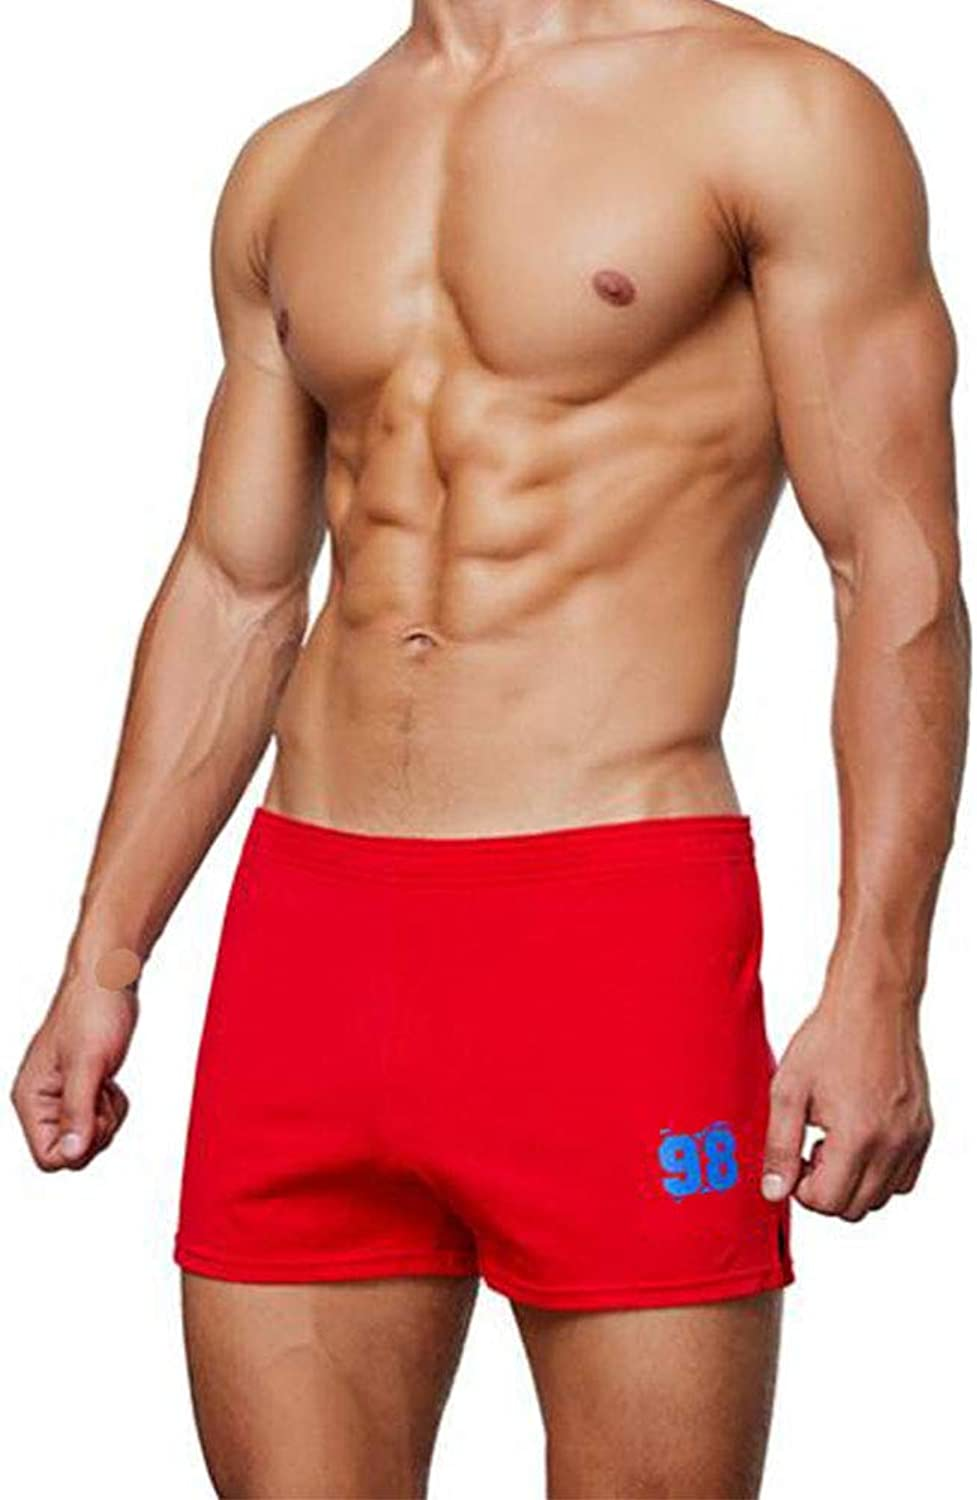 Shorts, Men, 100% Cotton, Home, Casual, Sports Shorts, Straight, Sports, Fitness